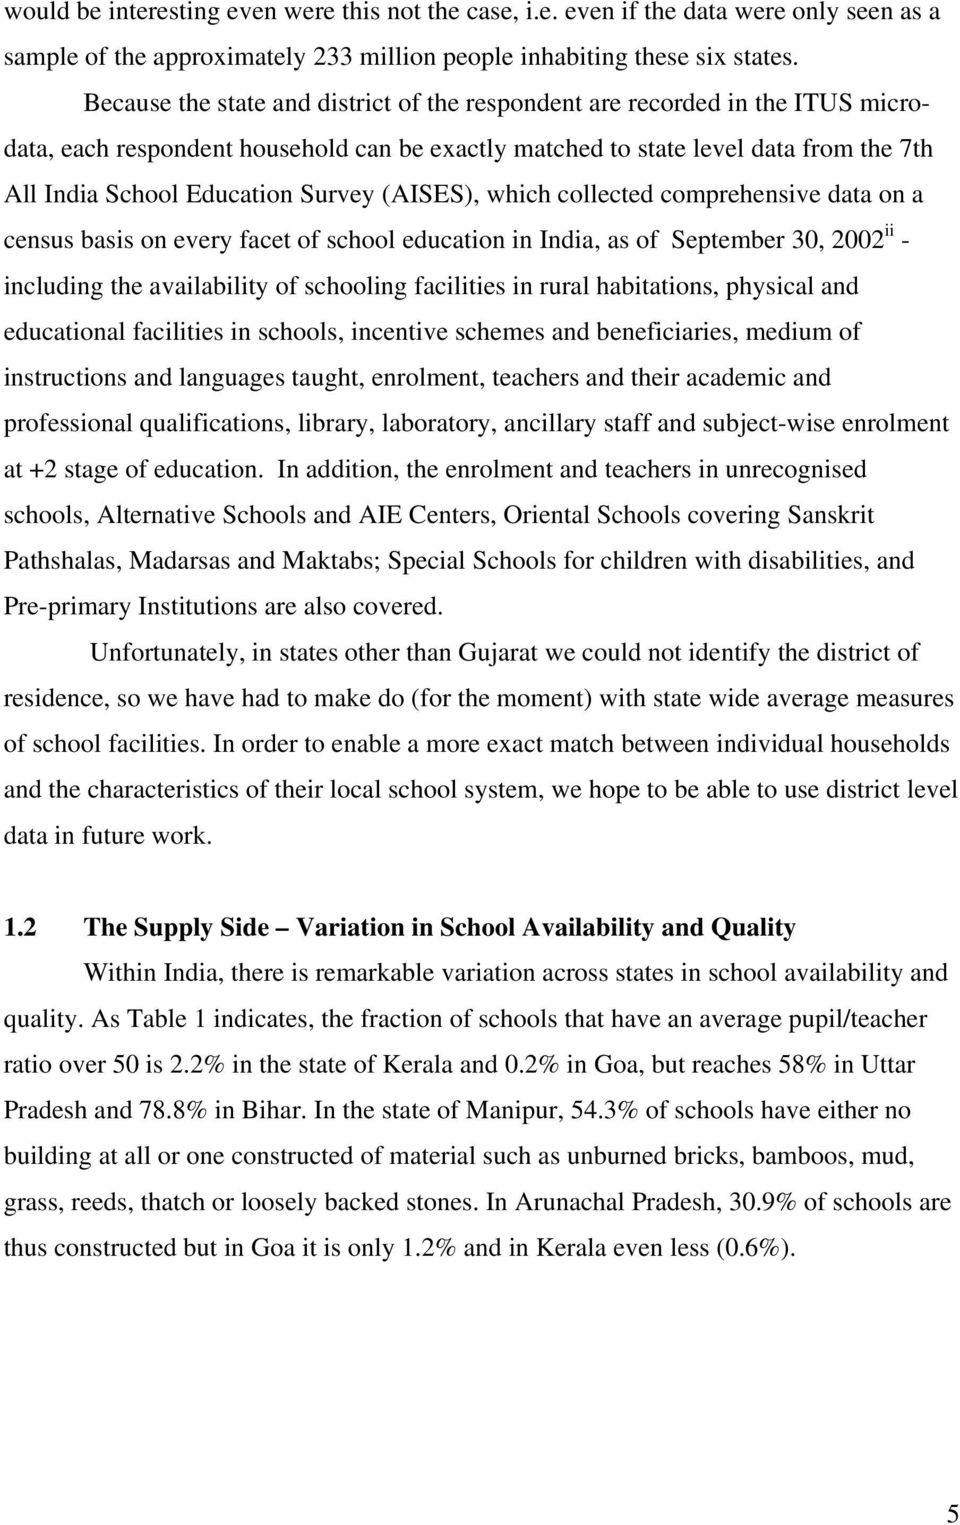 Survey (AISES), which collected comprehensive data on a census basis on every facet of school education in India, as of September 3, 22 ii - including the availability of schooling facilities in